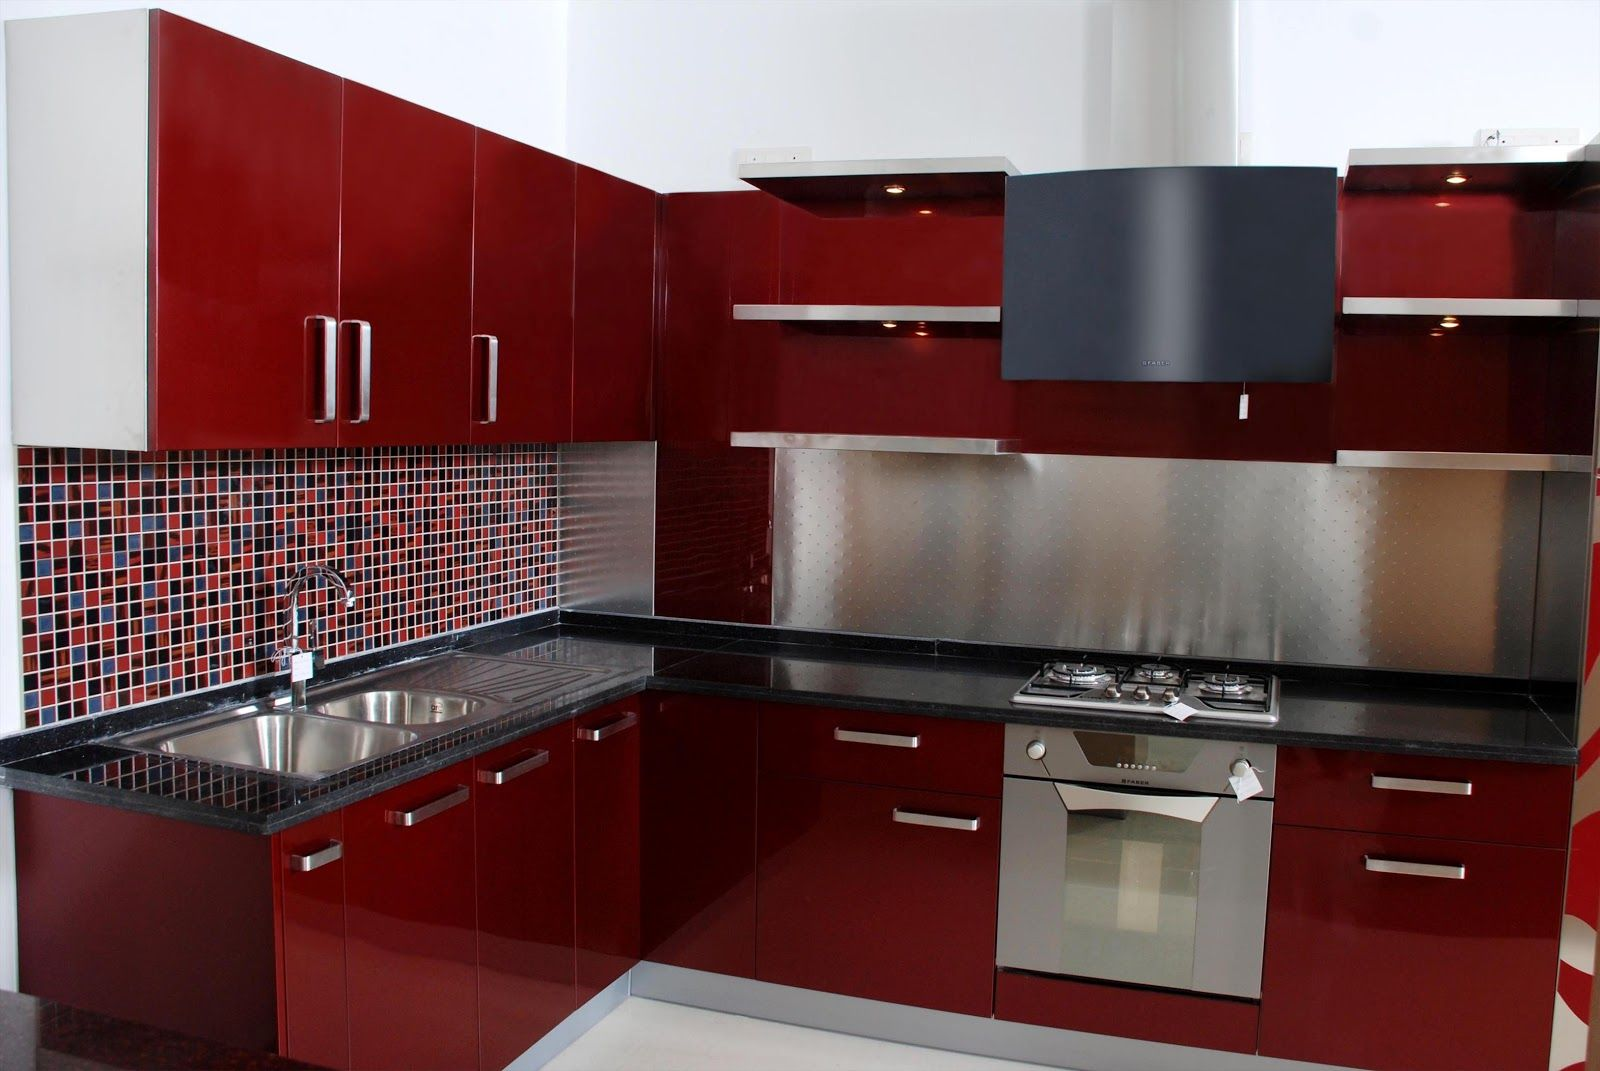 Parallel kitchen design india google search kitchen for Interior designs for bedroom cupboards